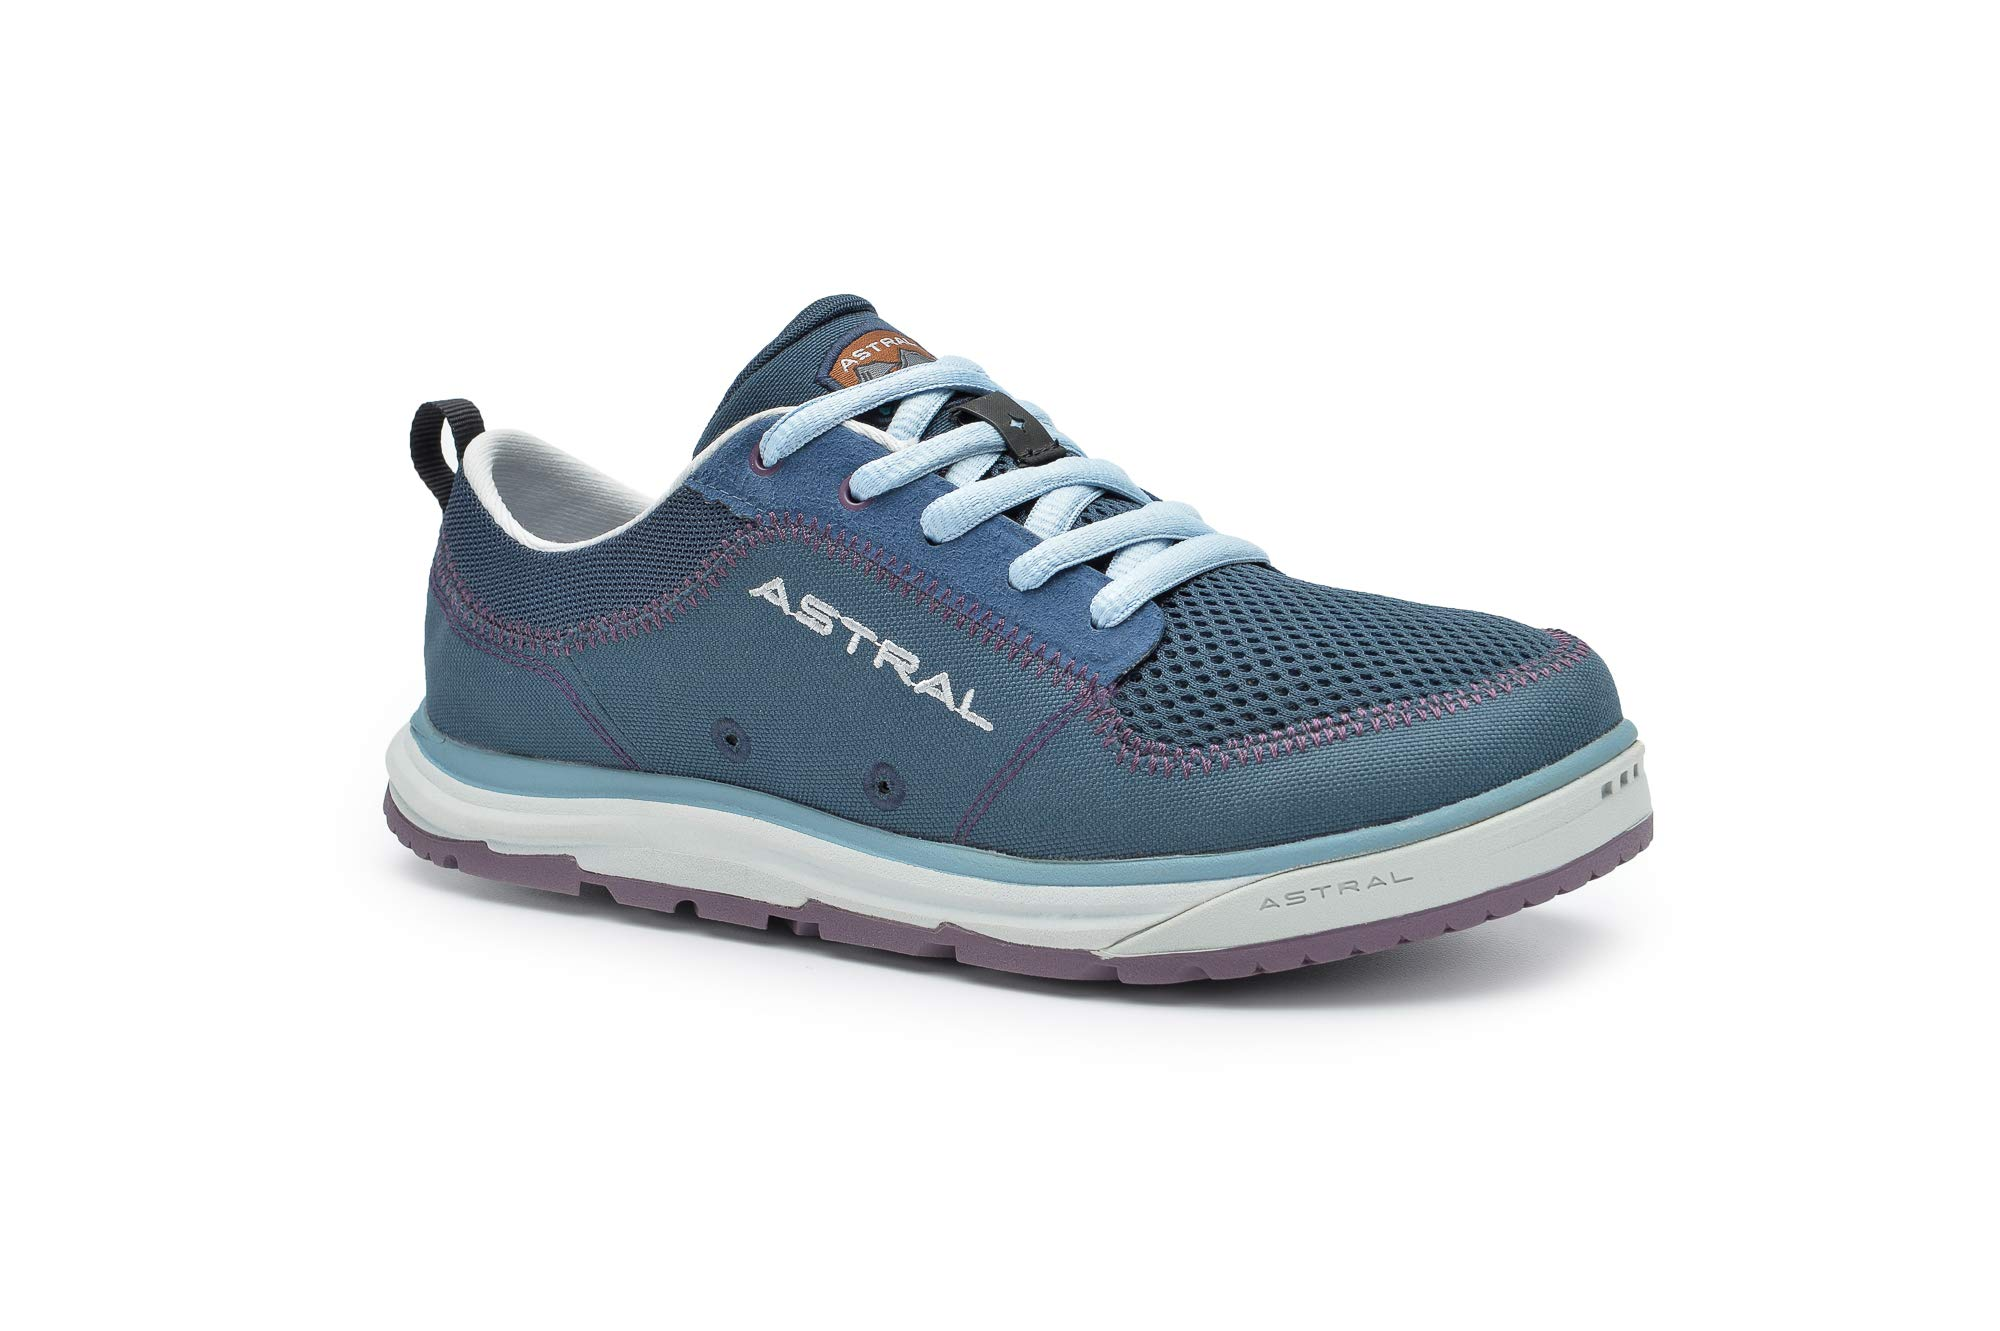 Astral Women's Brewess 2.0 Everyday Minimalist Outdoor Sneakers, Grippy and Quick Drying, Made for Water Sports, Travel, and Rock Scrambling, Deep Water Navy, 7 M US by Astral